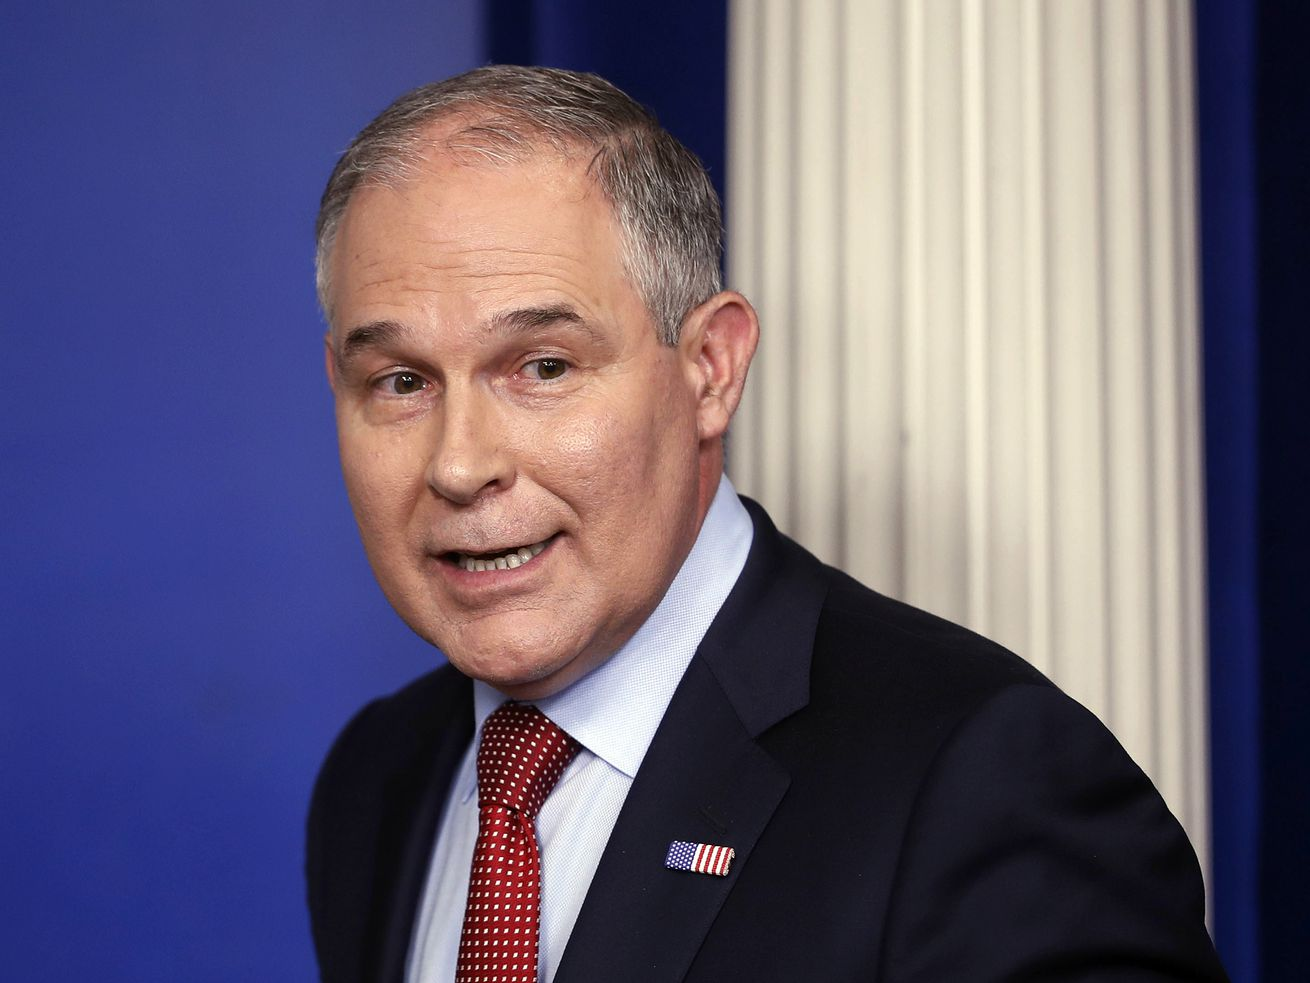 EPA administrator Scott Pruitt has been having a very rough week as questions about his condo deal with a lobbyist, improper raises for aides, and first-class travel continue to mount.